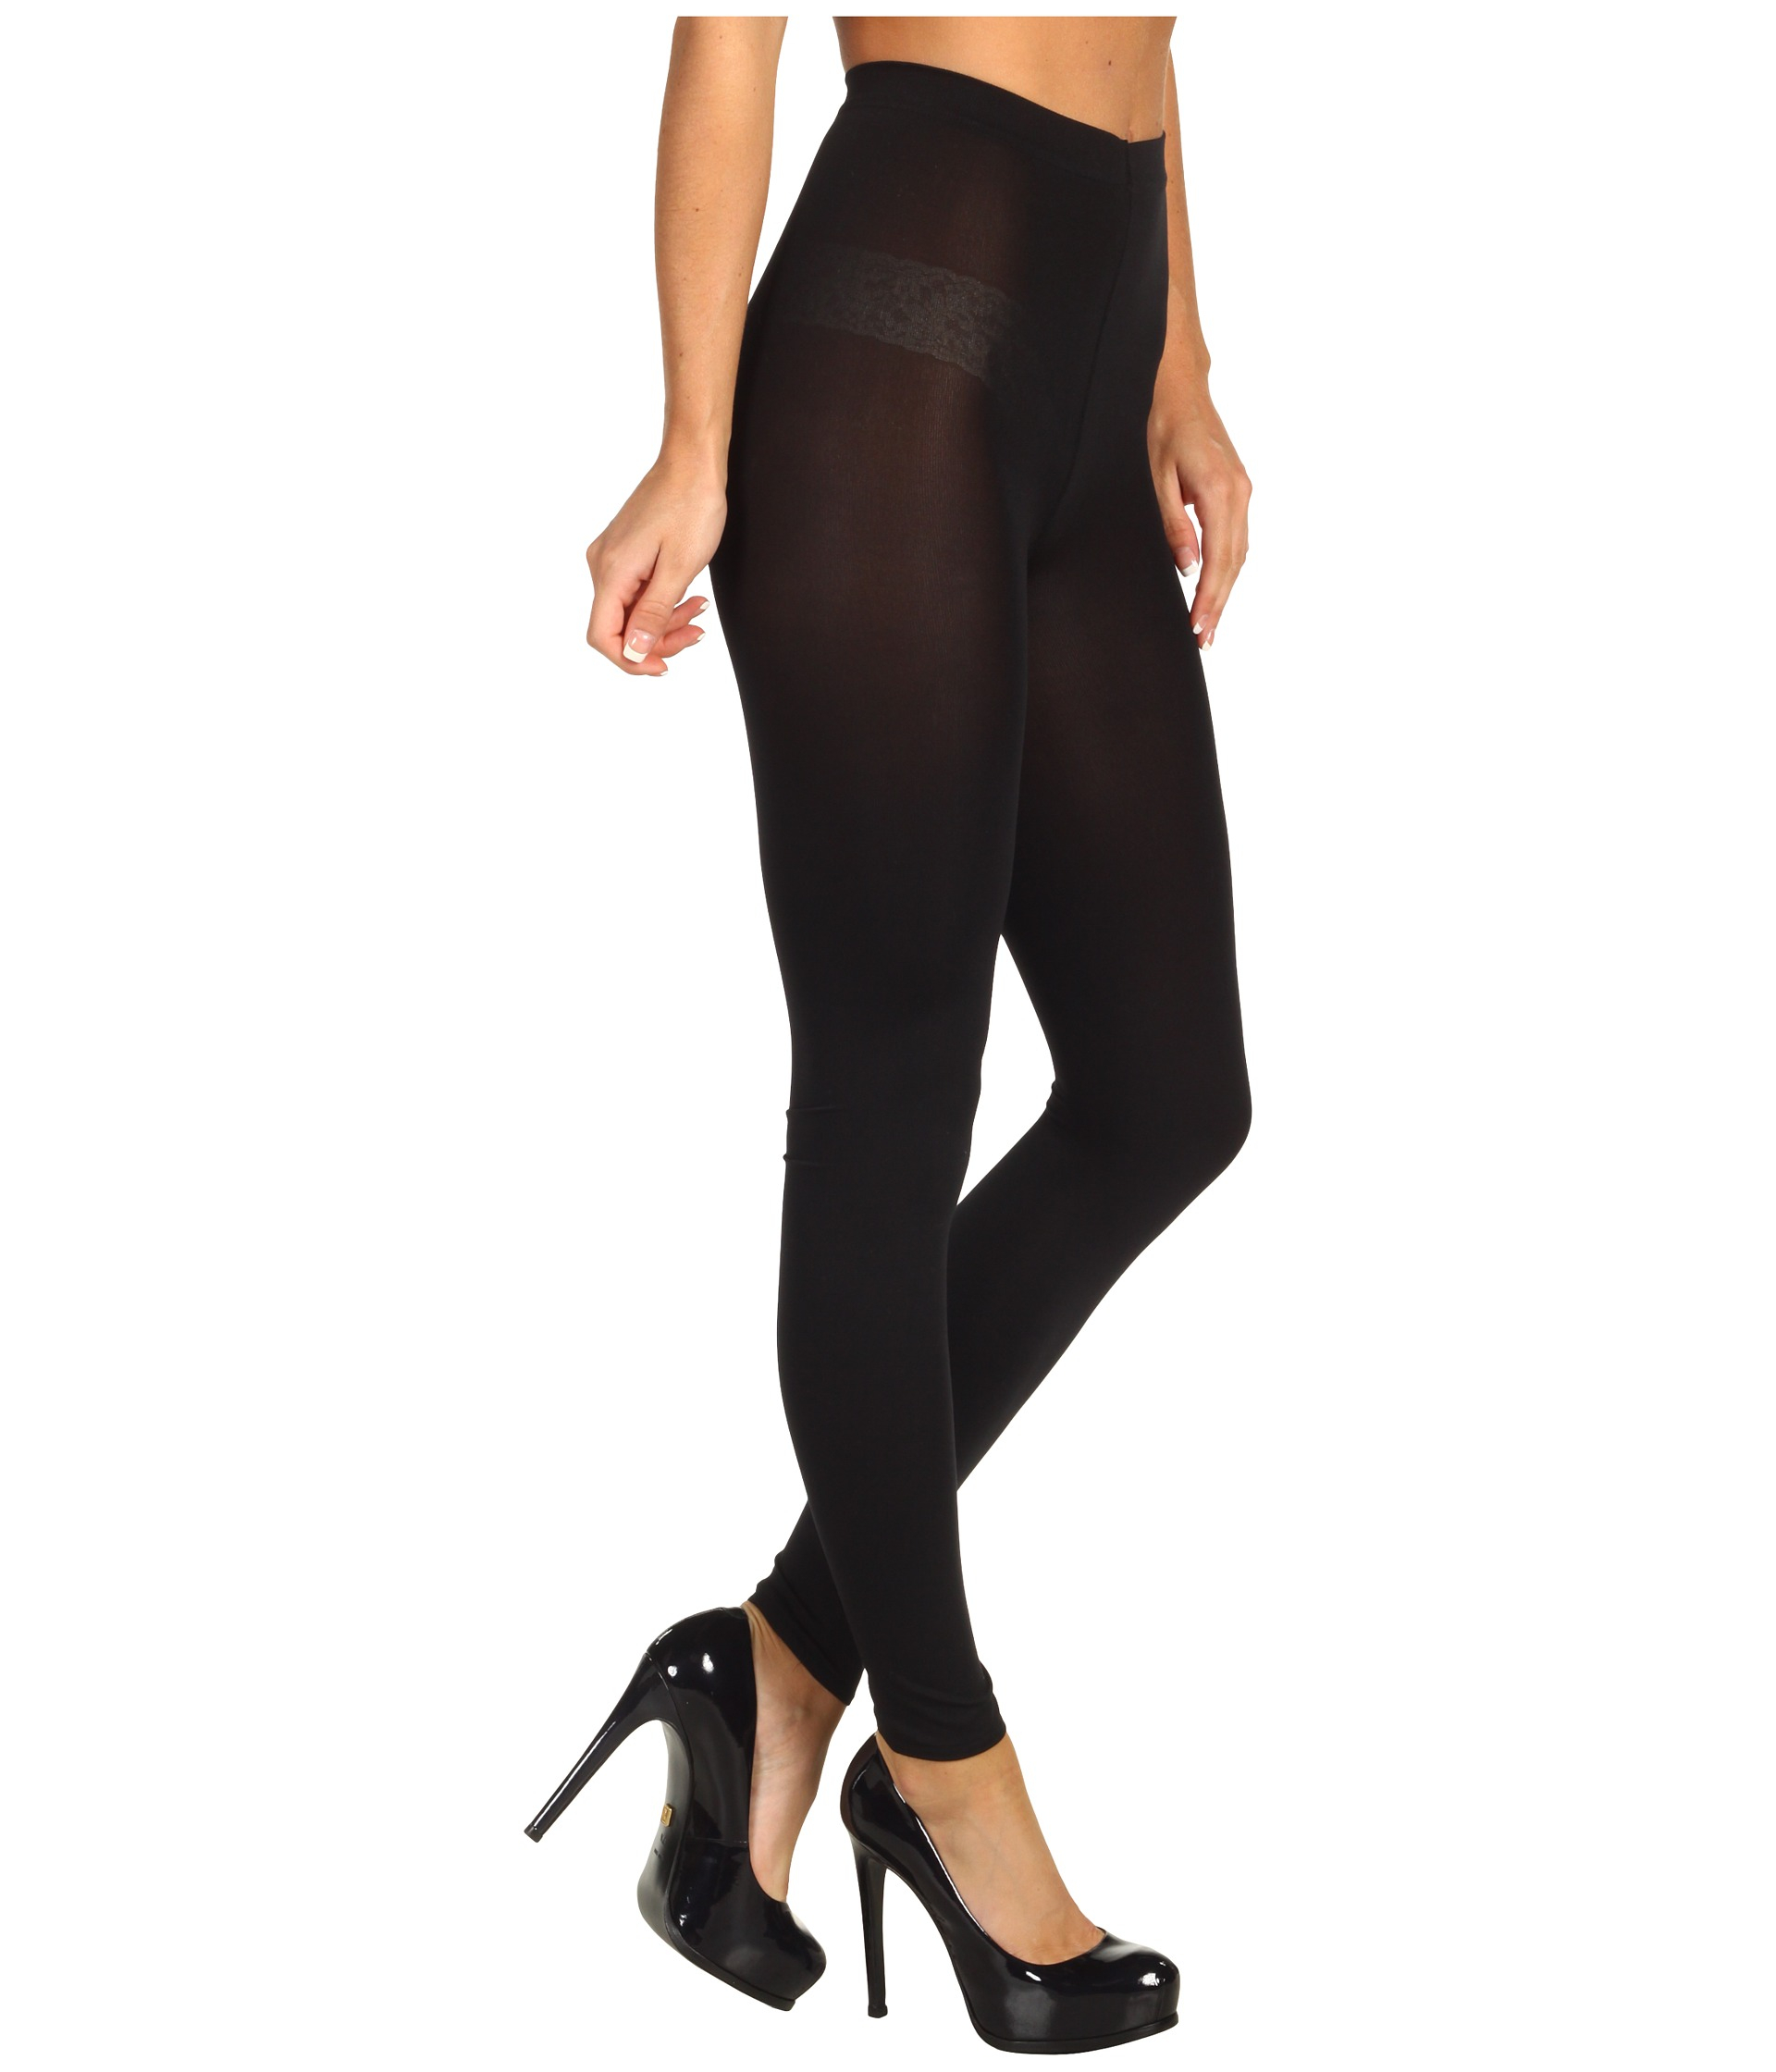 974e86e97ee Wolford Mat Opaque 80 Leggings in Black - Lyst